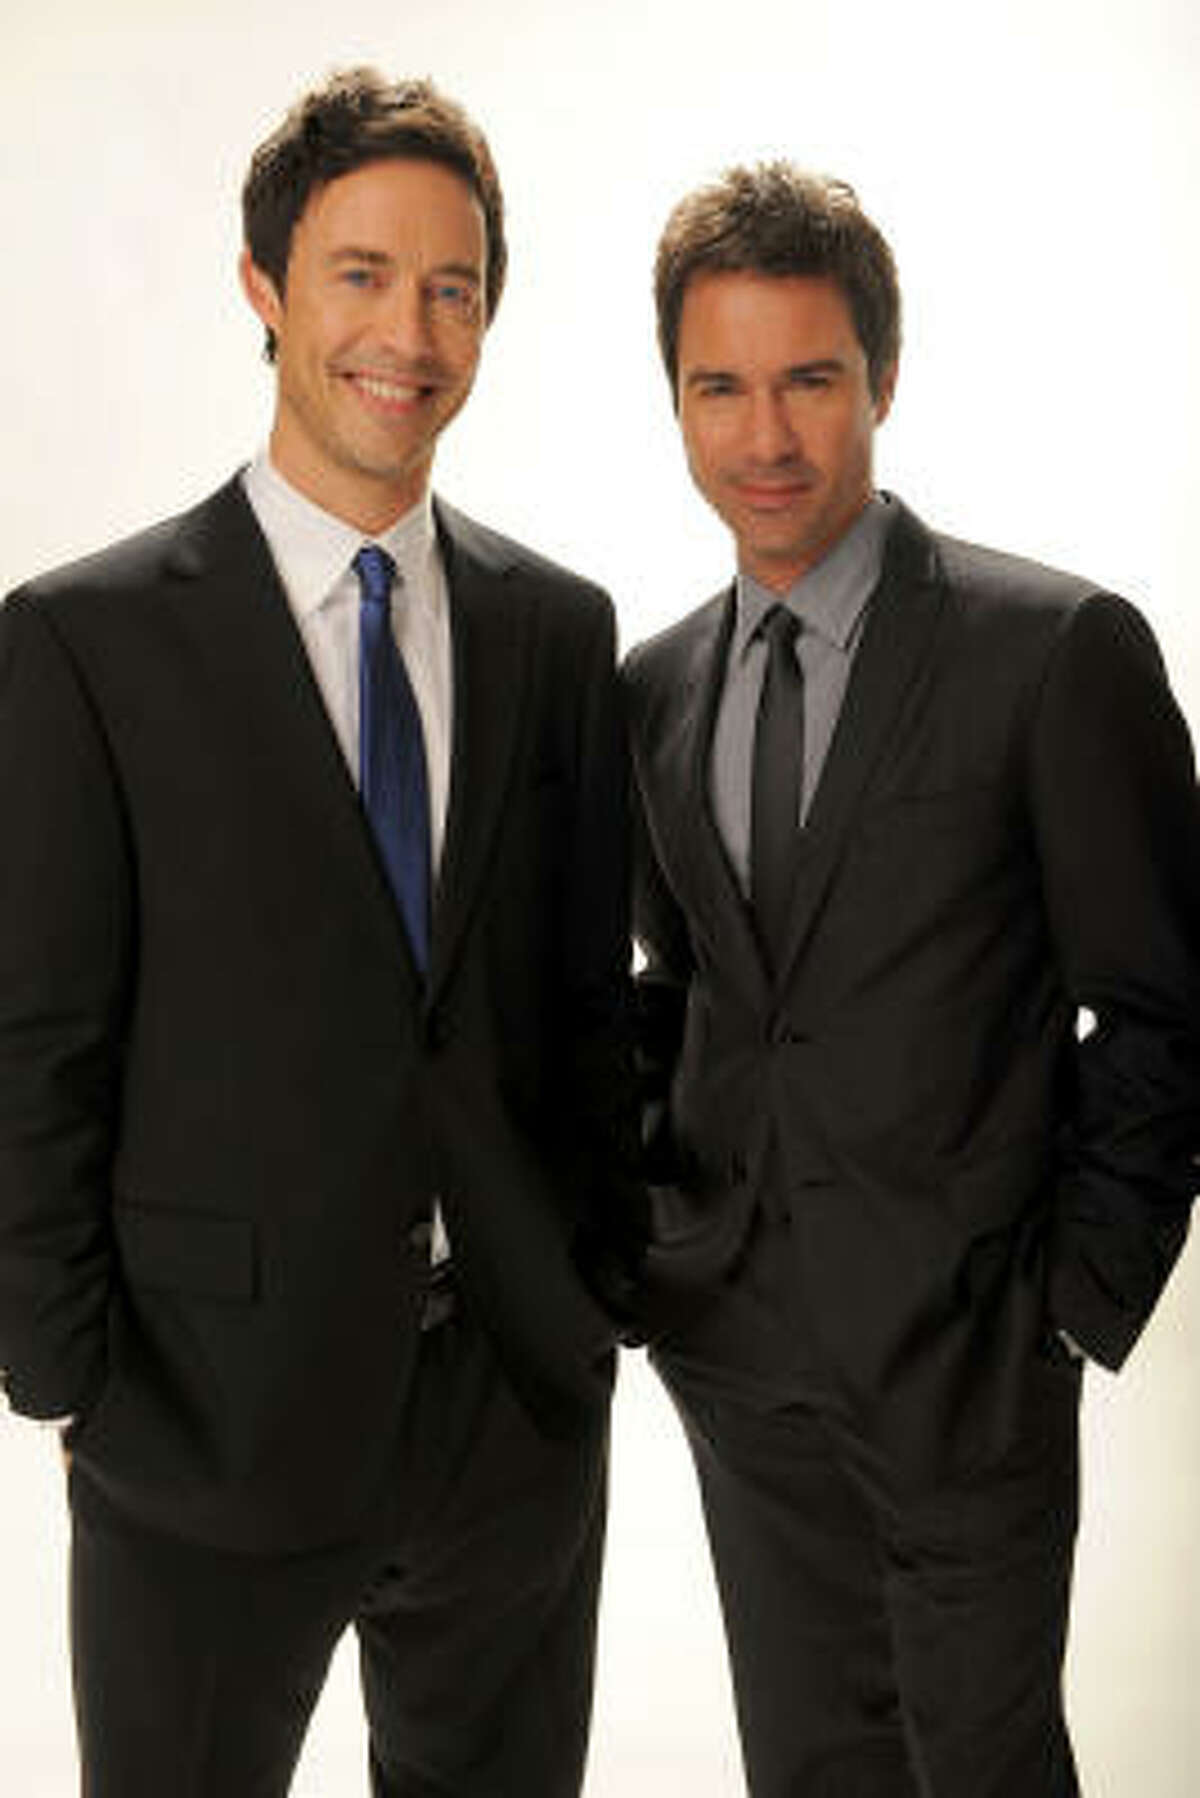 Eric McCormack and Tom Cavanagh star in TNT's Trust Me as creative partners at an advertising agency who are constantly hammering out their relationship.